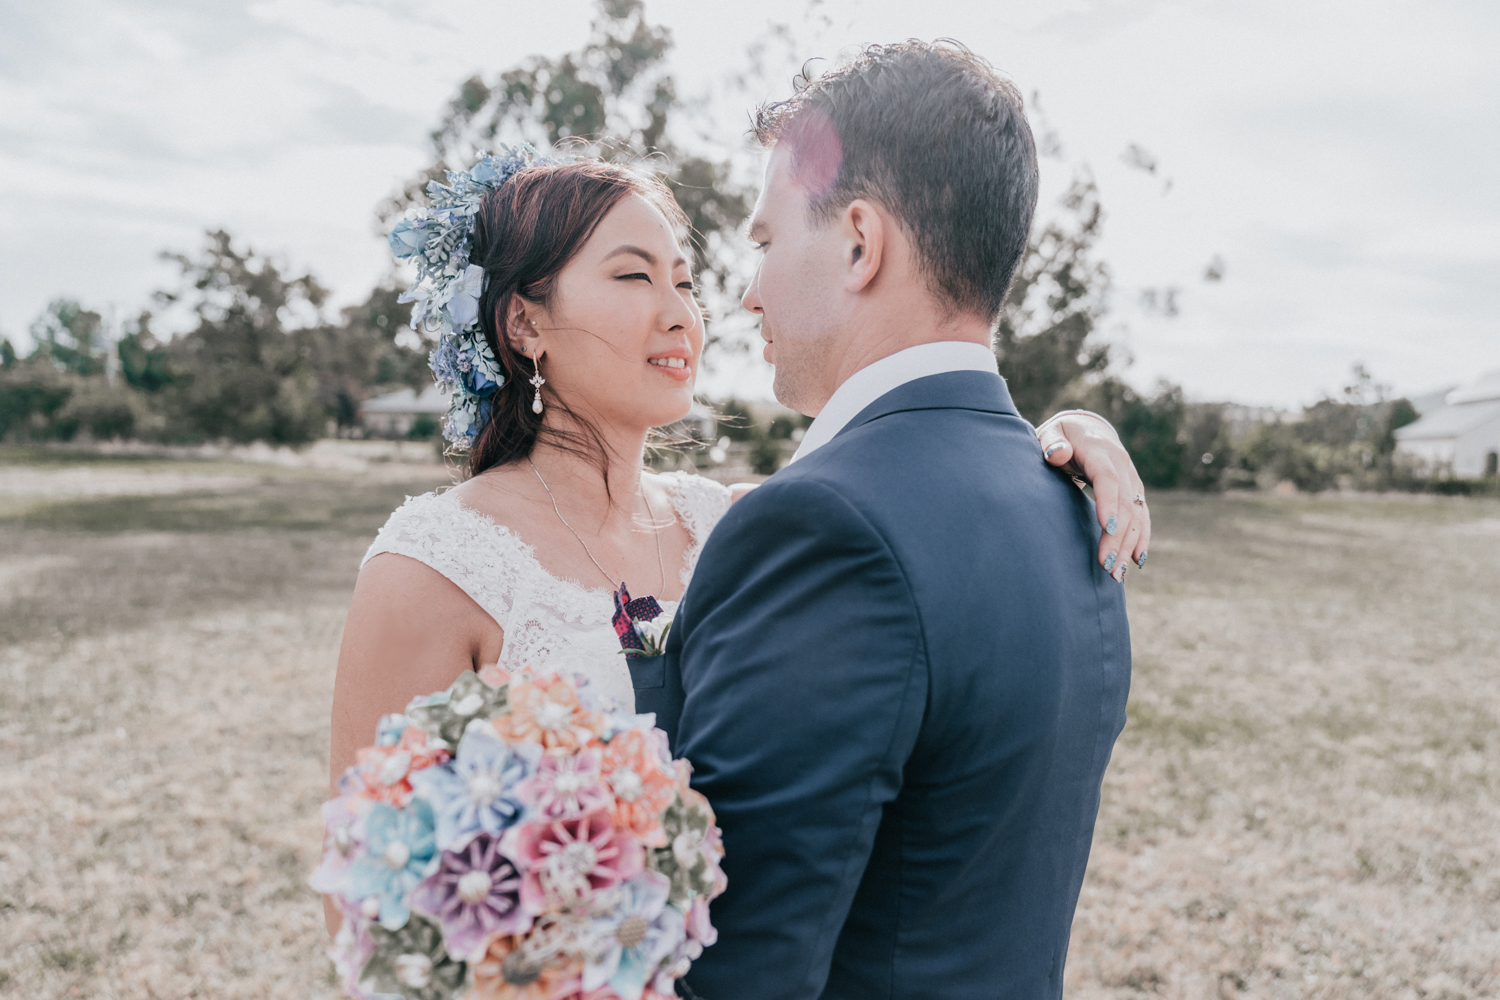 Stunning wedding photo of Melbourne bride groom look at each other at picturesque winery wedding venue Immerse Yarra Valley